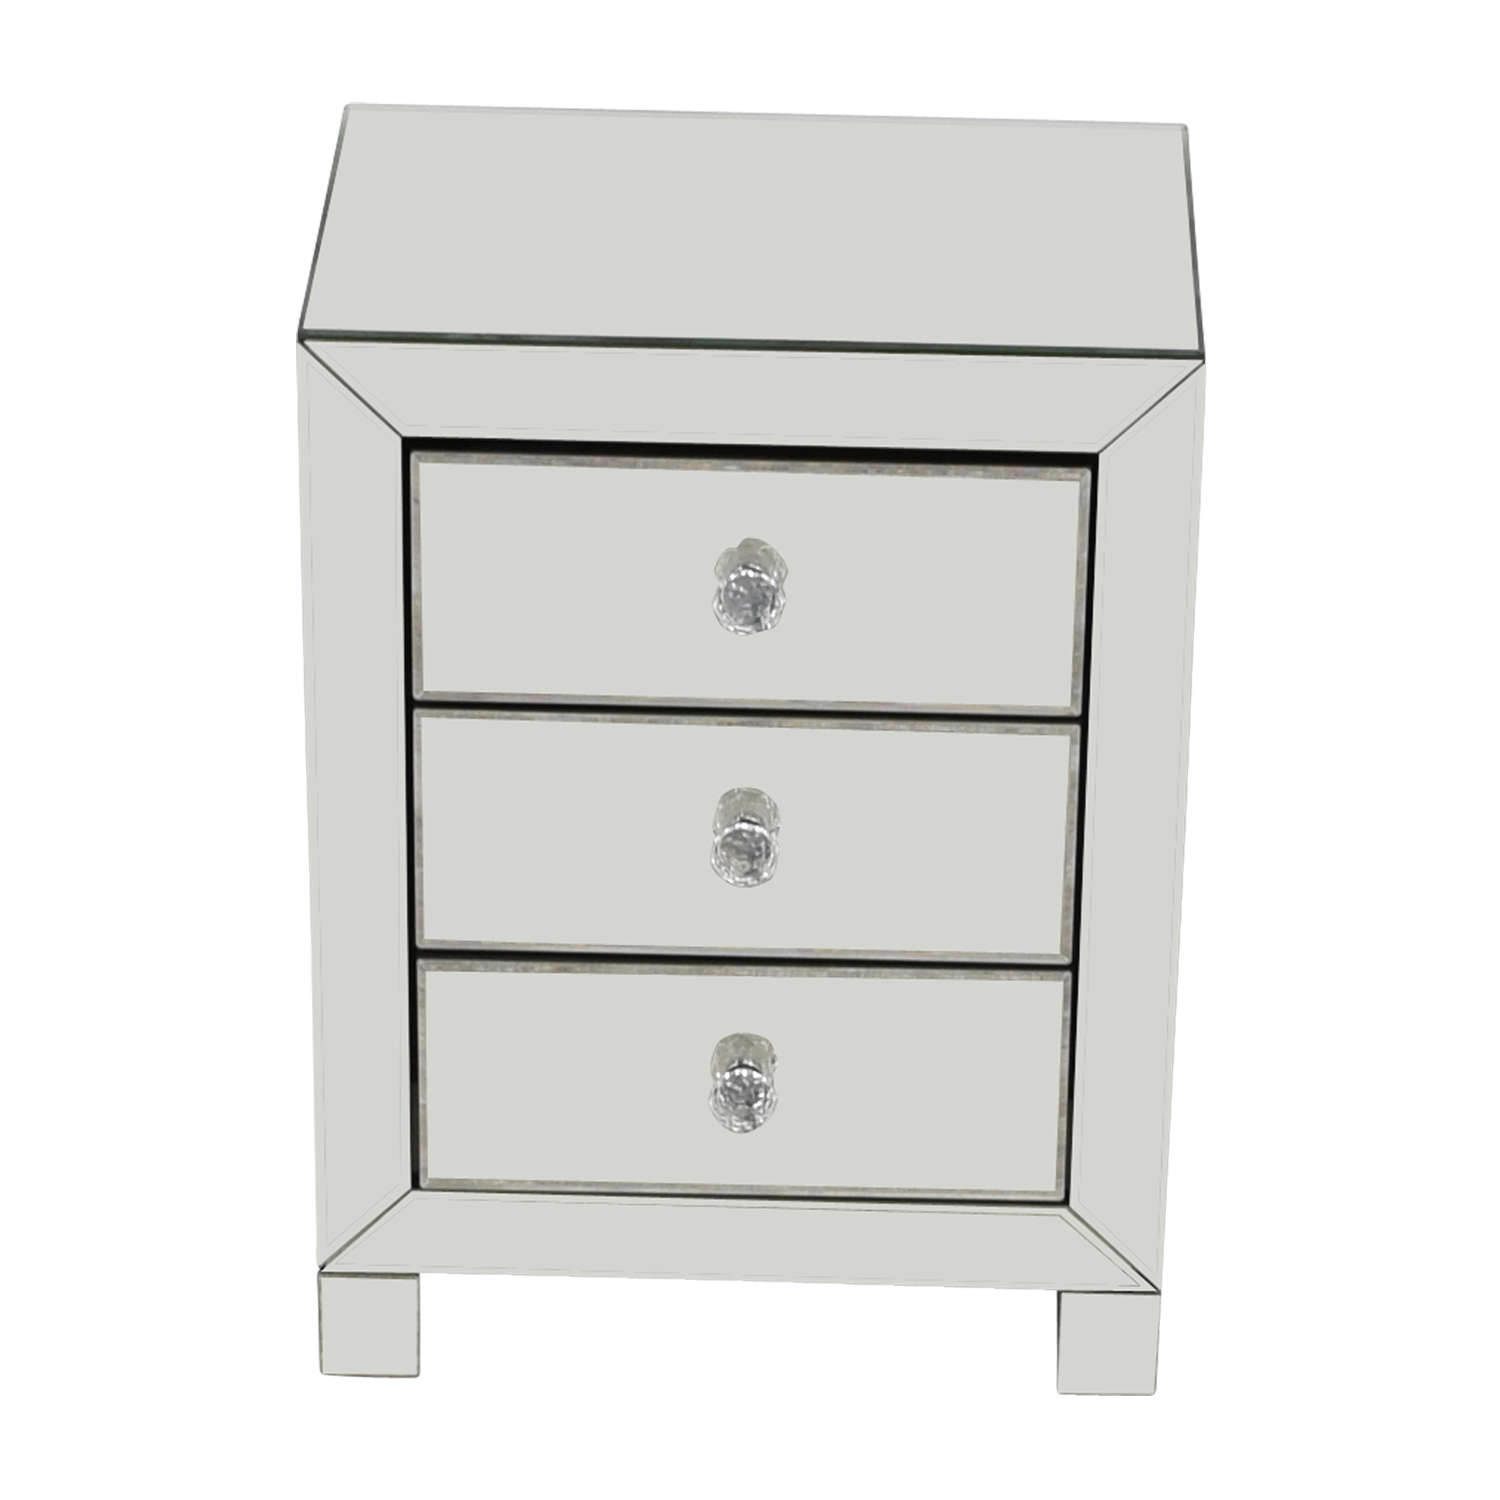 Target Target Three-Drawer Mirrored Nightstand GLASS